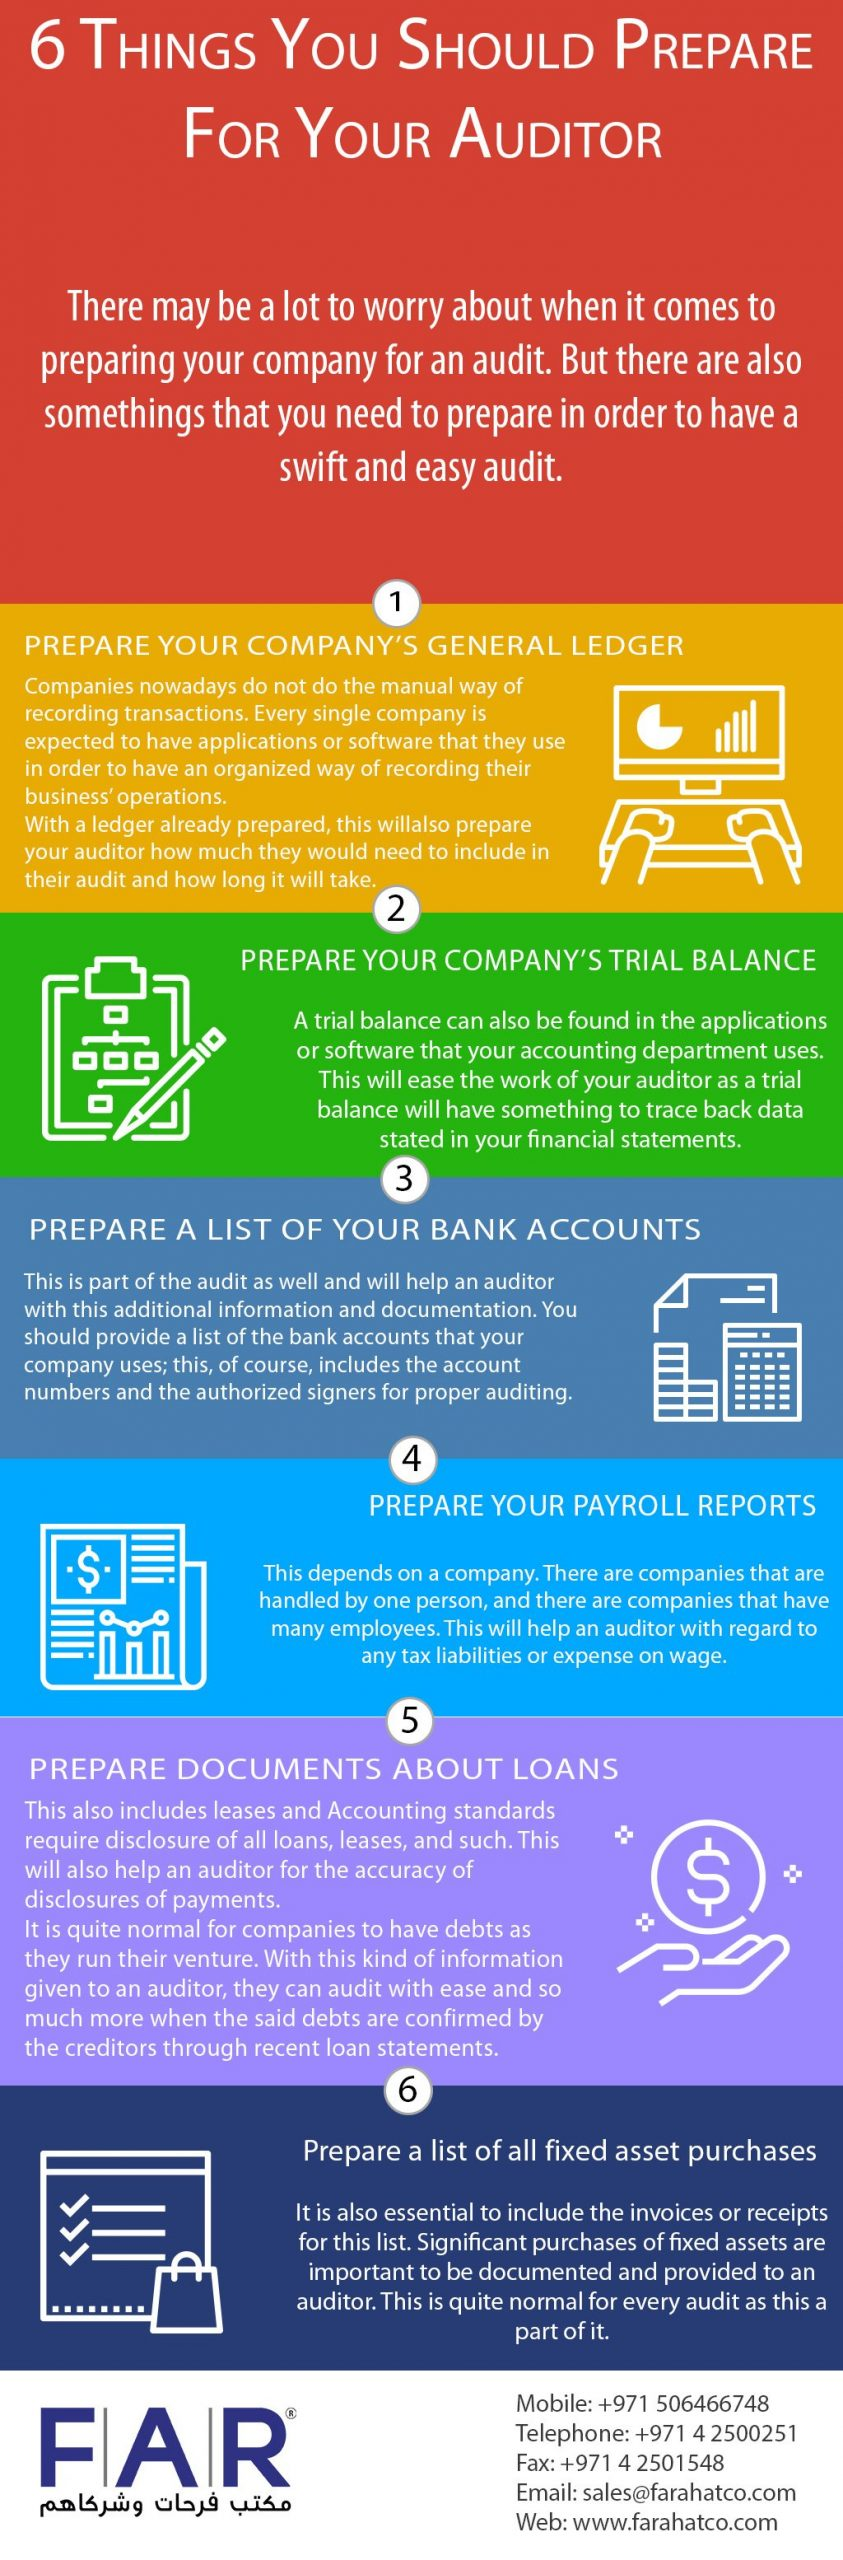 6 things you should prepare for your auditor